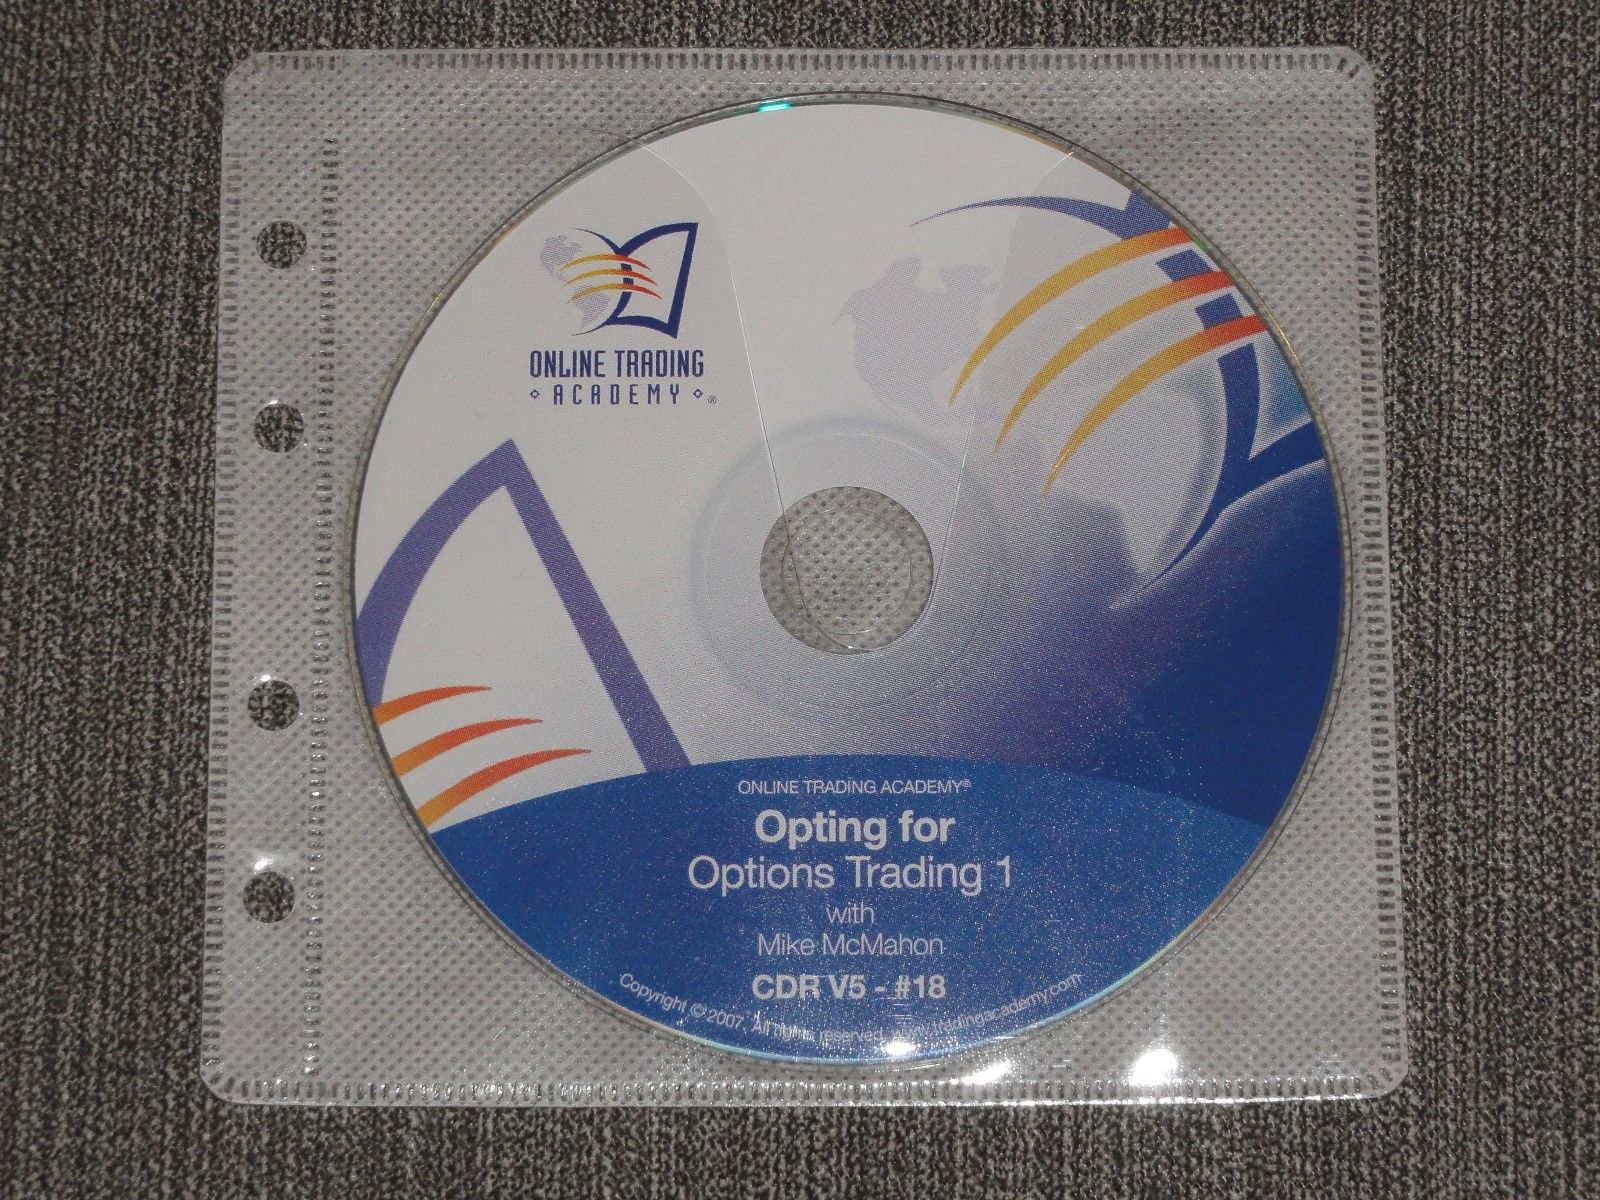 online trading academy Mike McMahon Opting for Options 1 CD stocks simpler forex